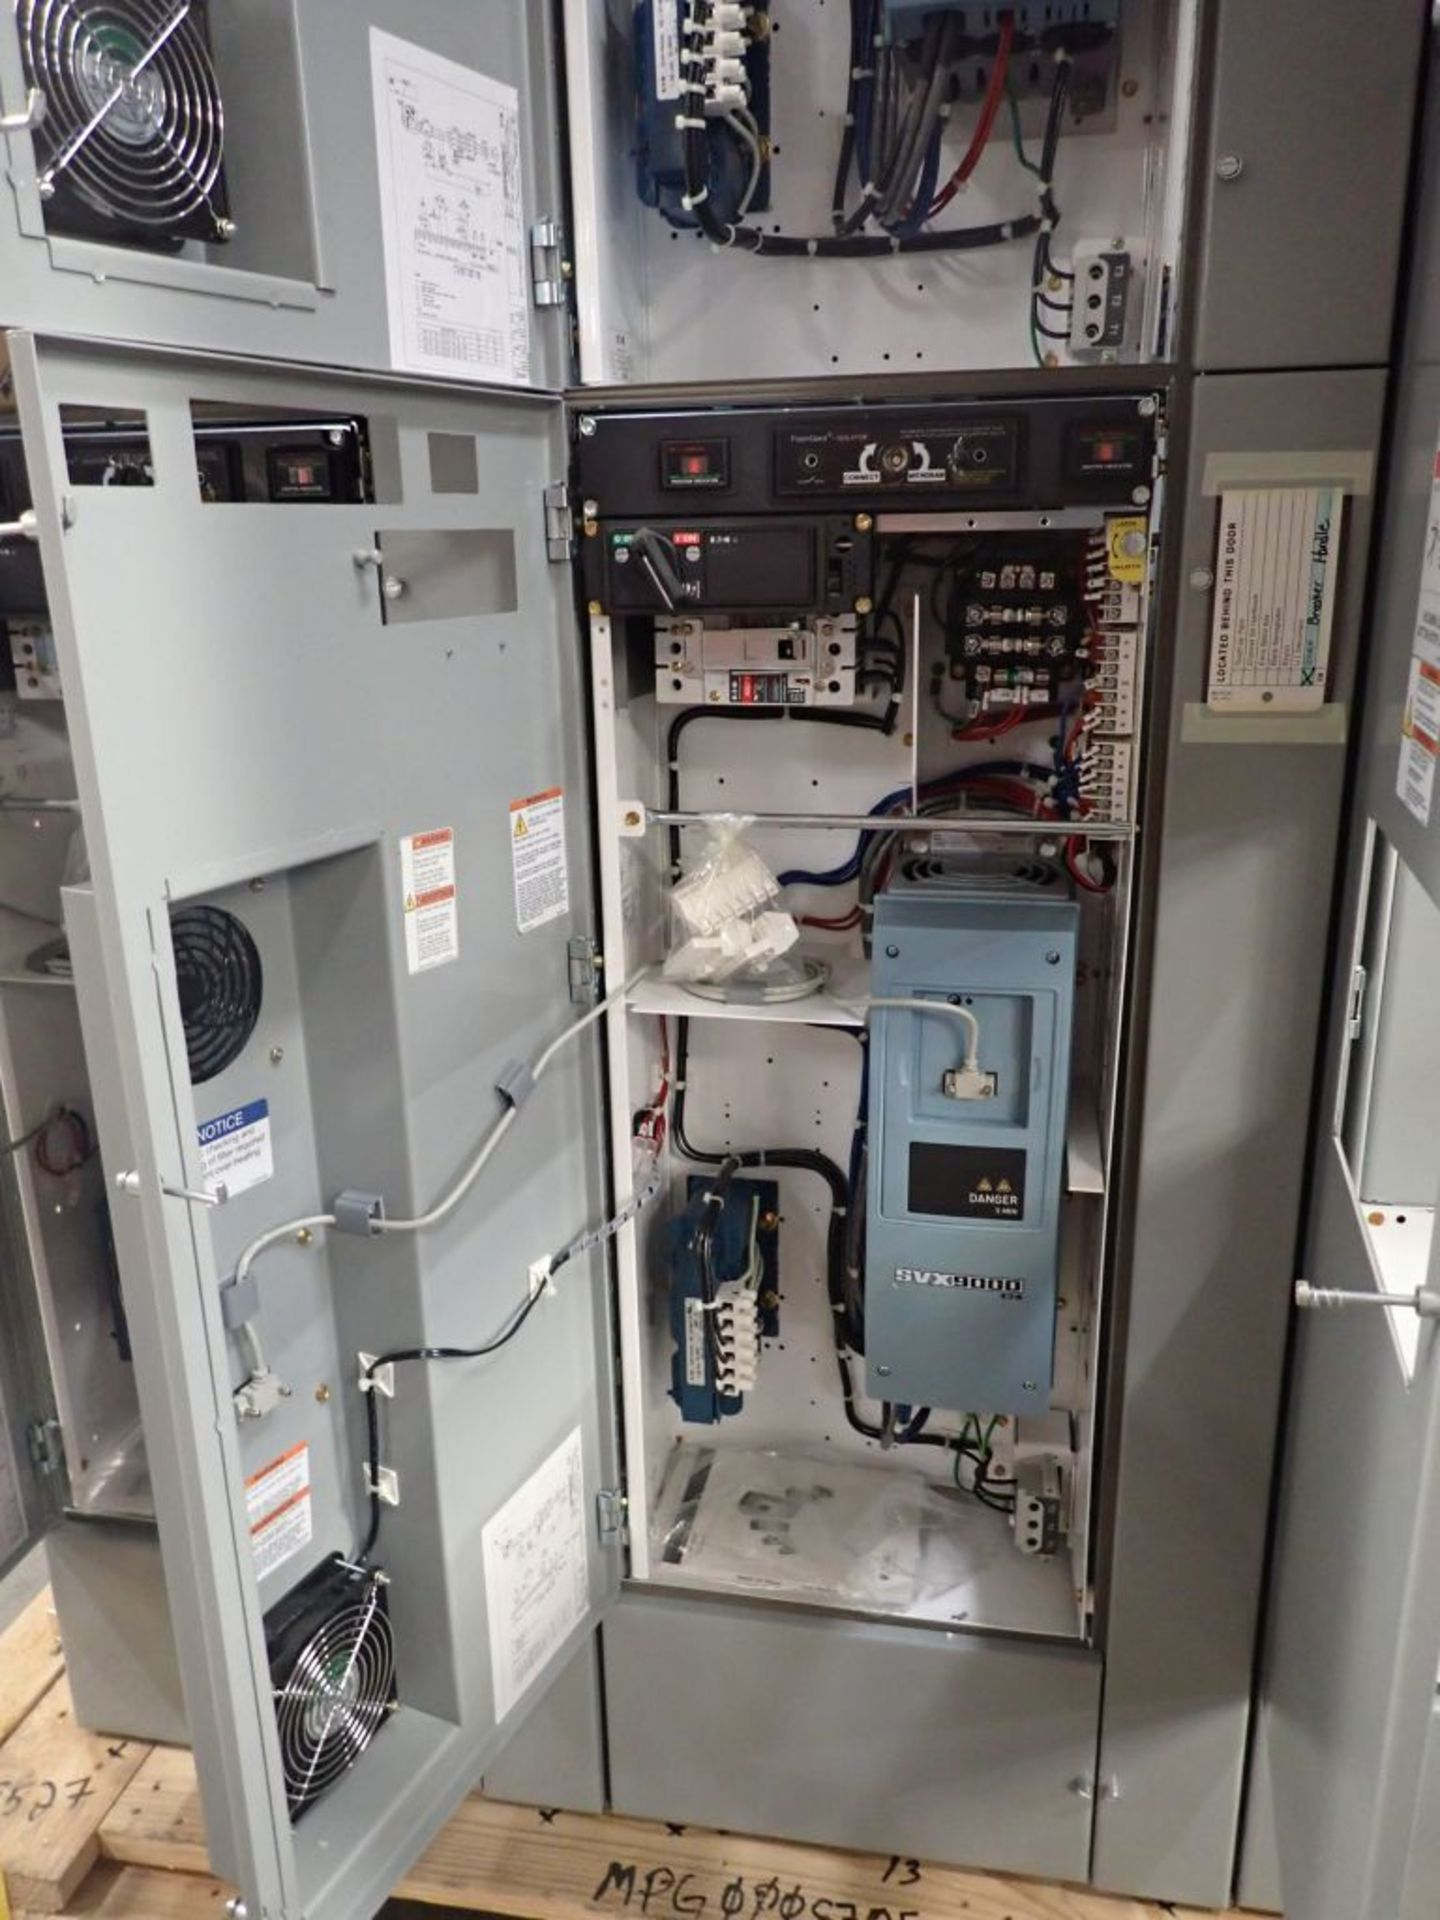 Eaton Freedom 2100 Series Motor Control Center   (4) SVX900-30A, with Eaton AF Drives, SVX9000, - Image 43 of 60